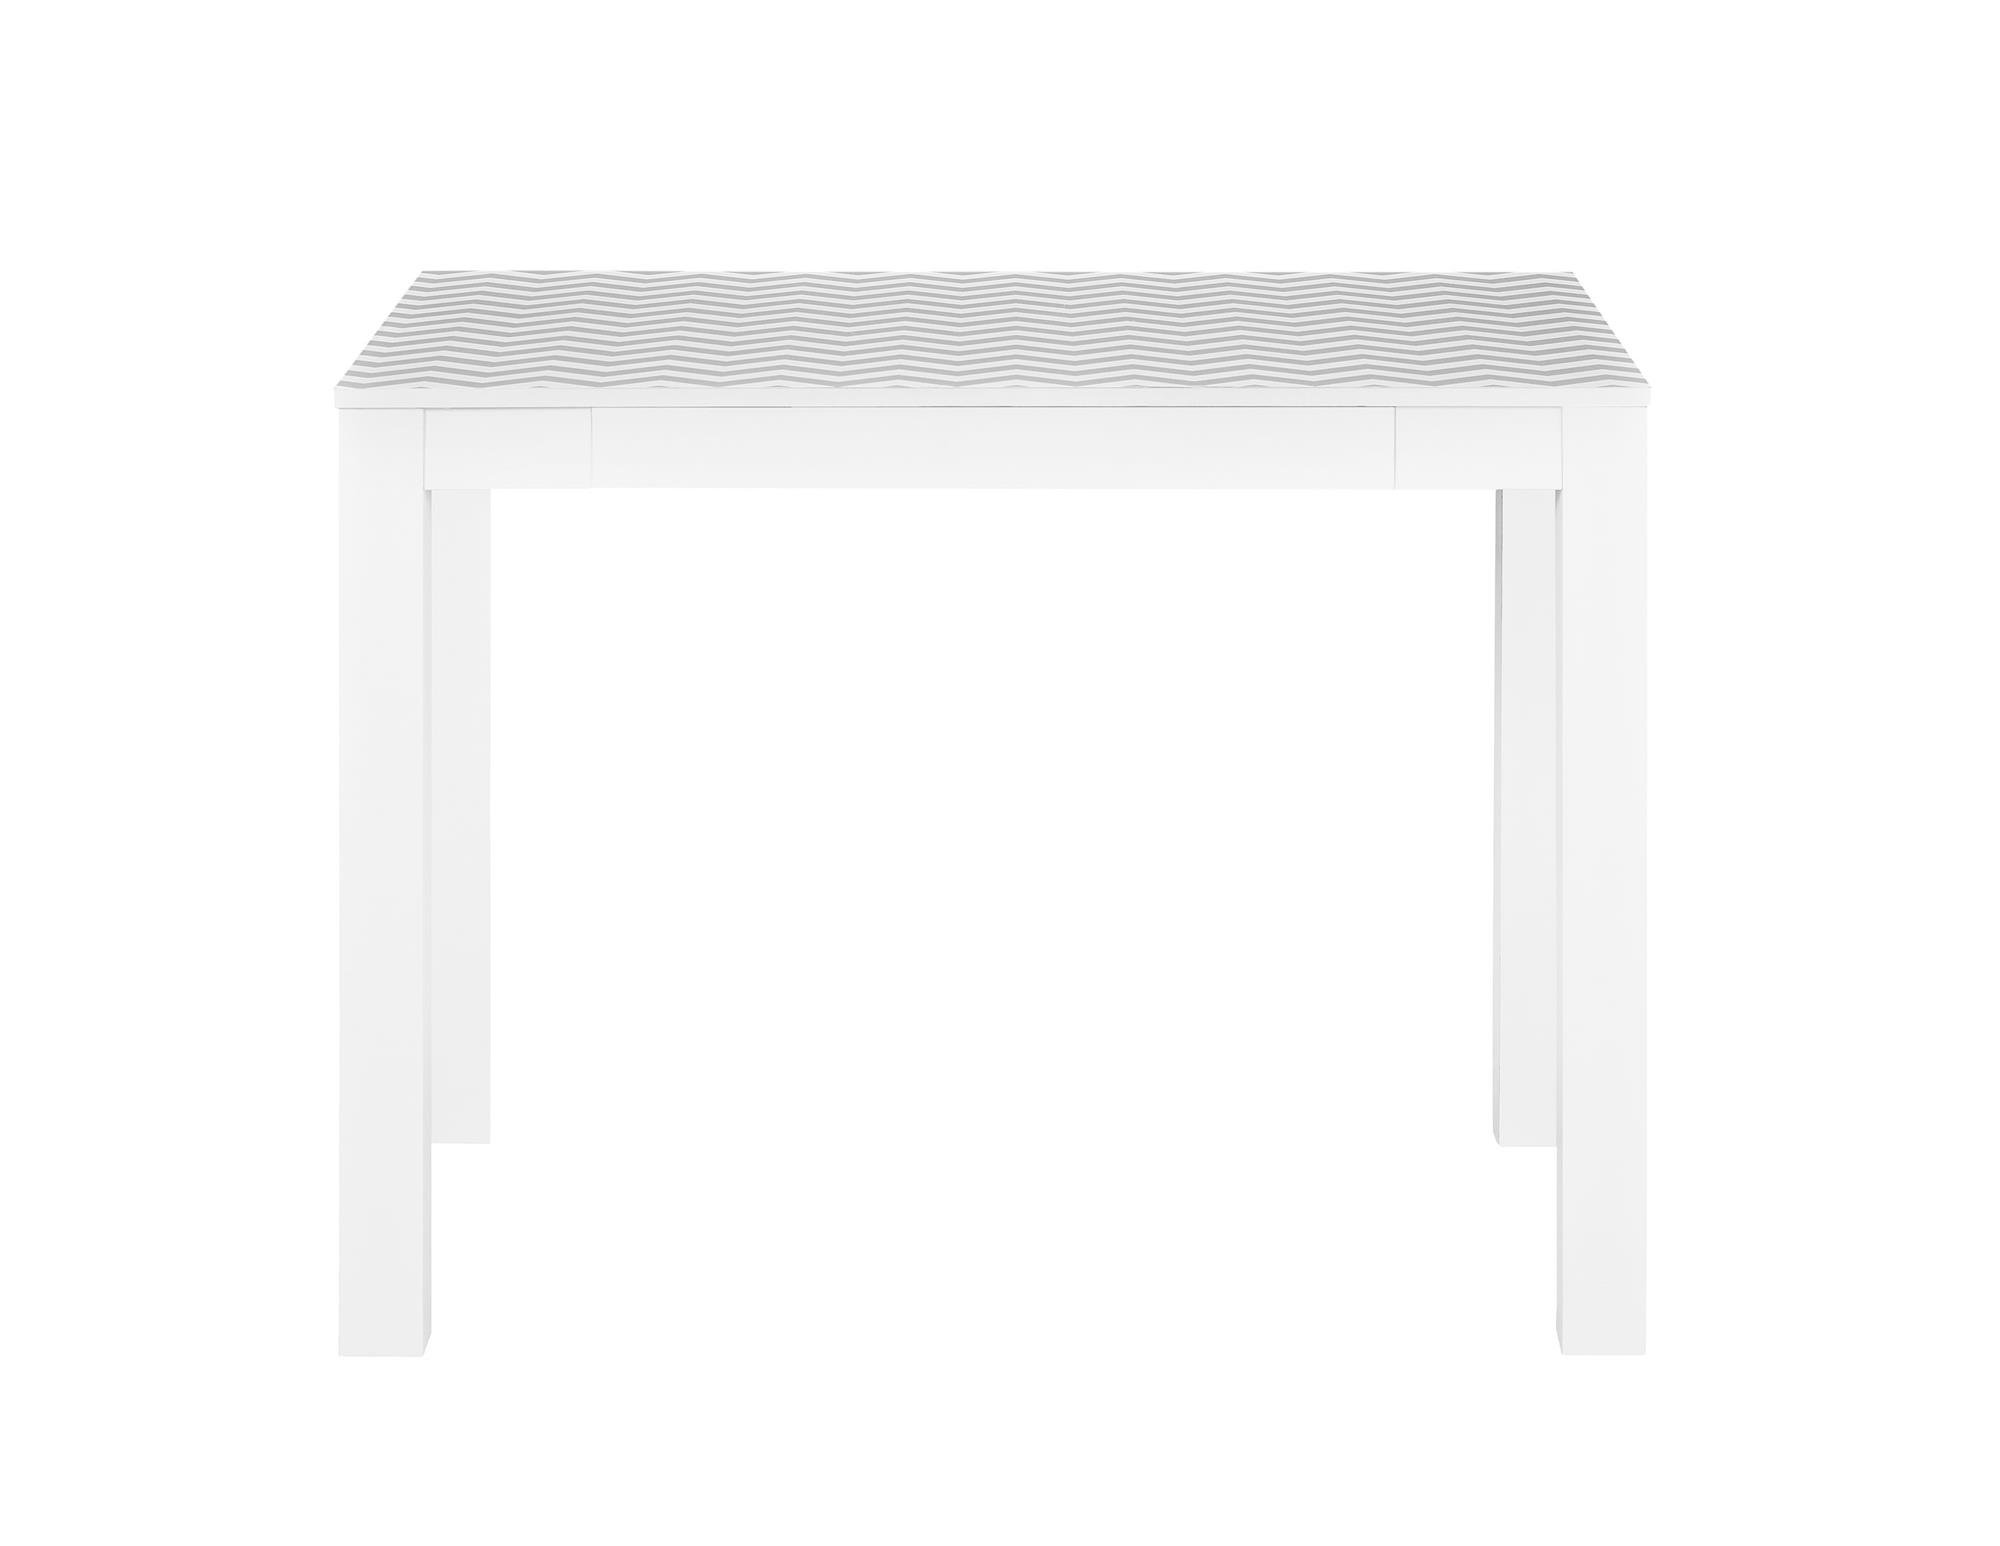 Ameriwood Home Parsons Desk Drawer, White/Gray Chevron by Ameriwood Home (Image #5)